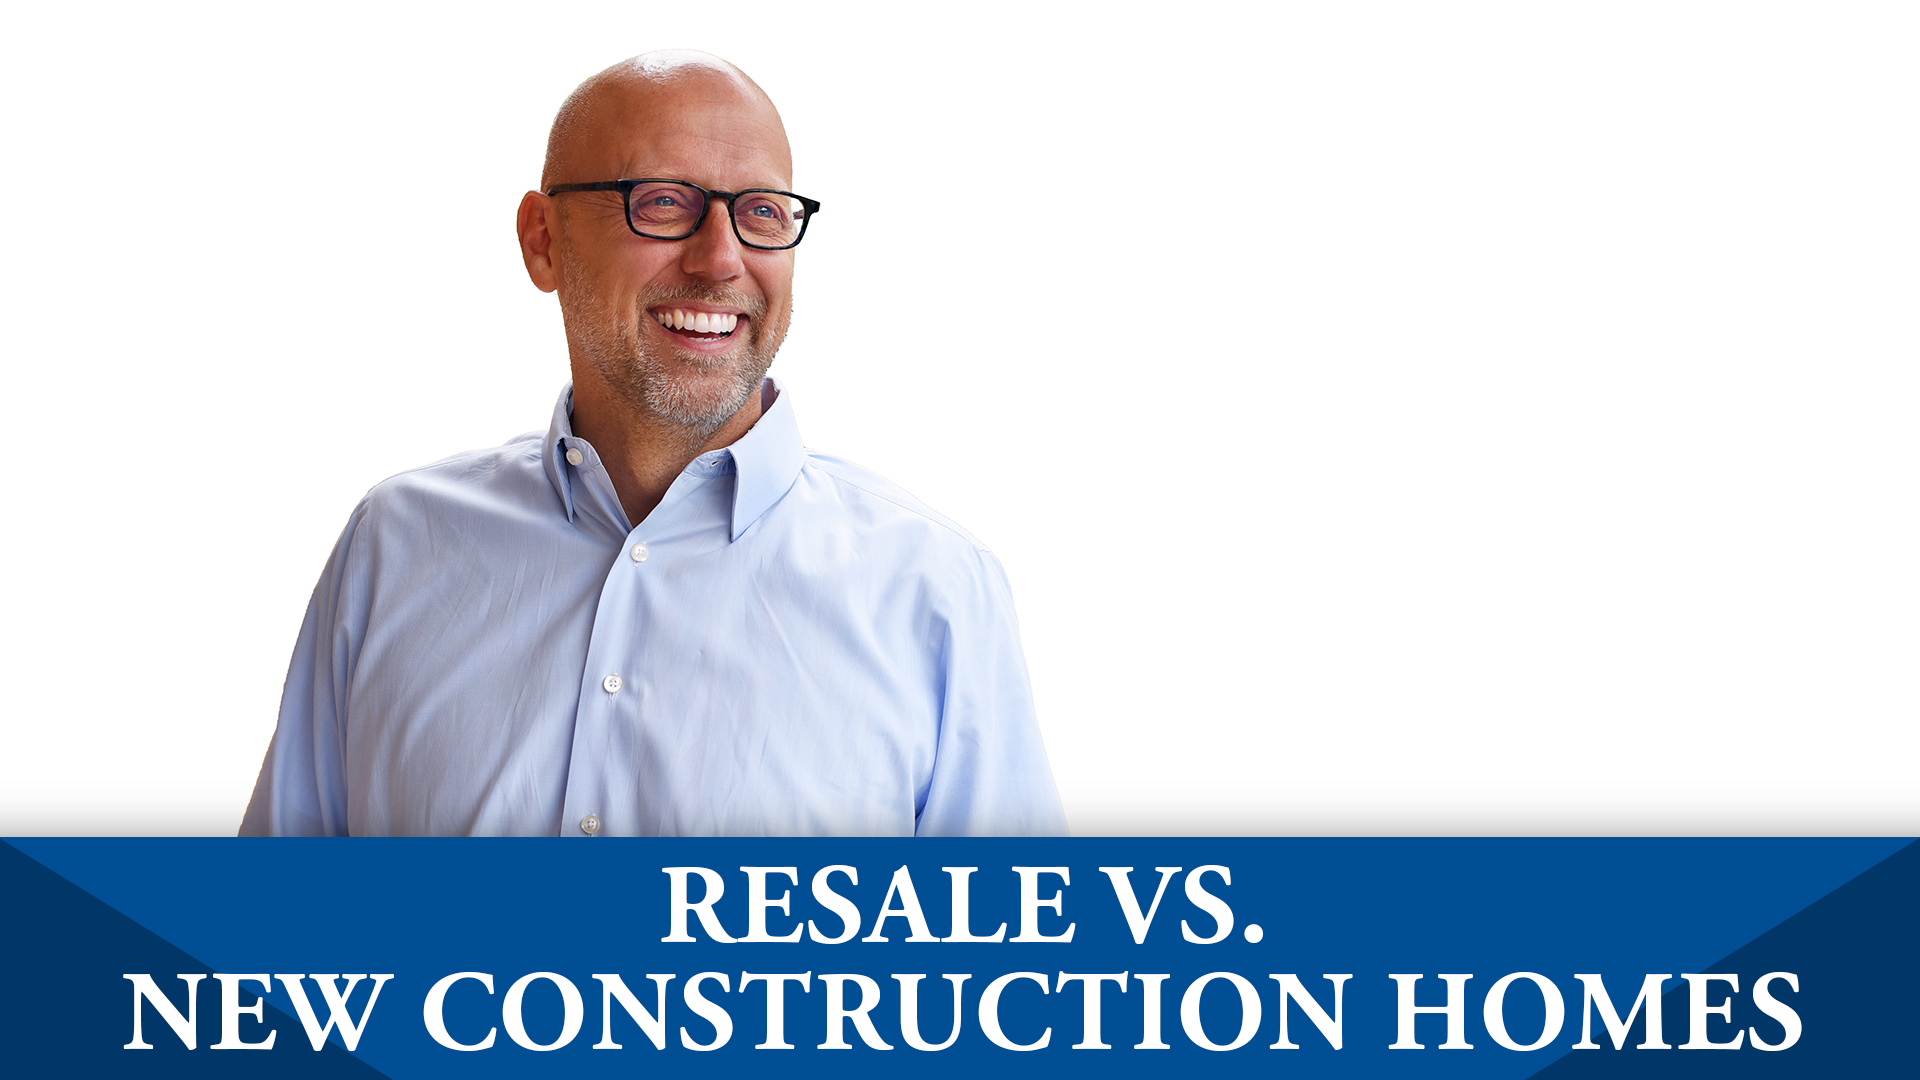 3 Benefits of Resale and New Construction Homes